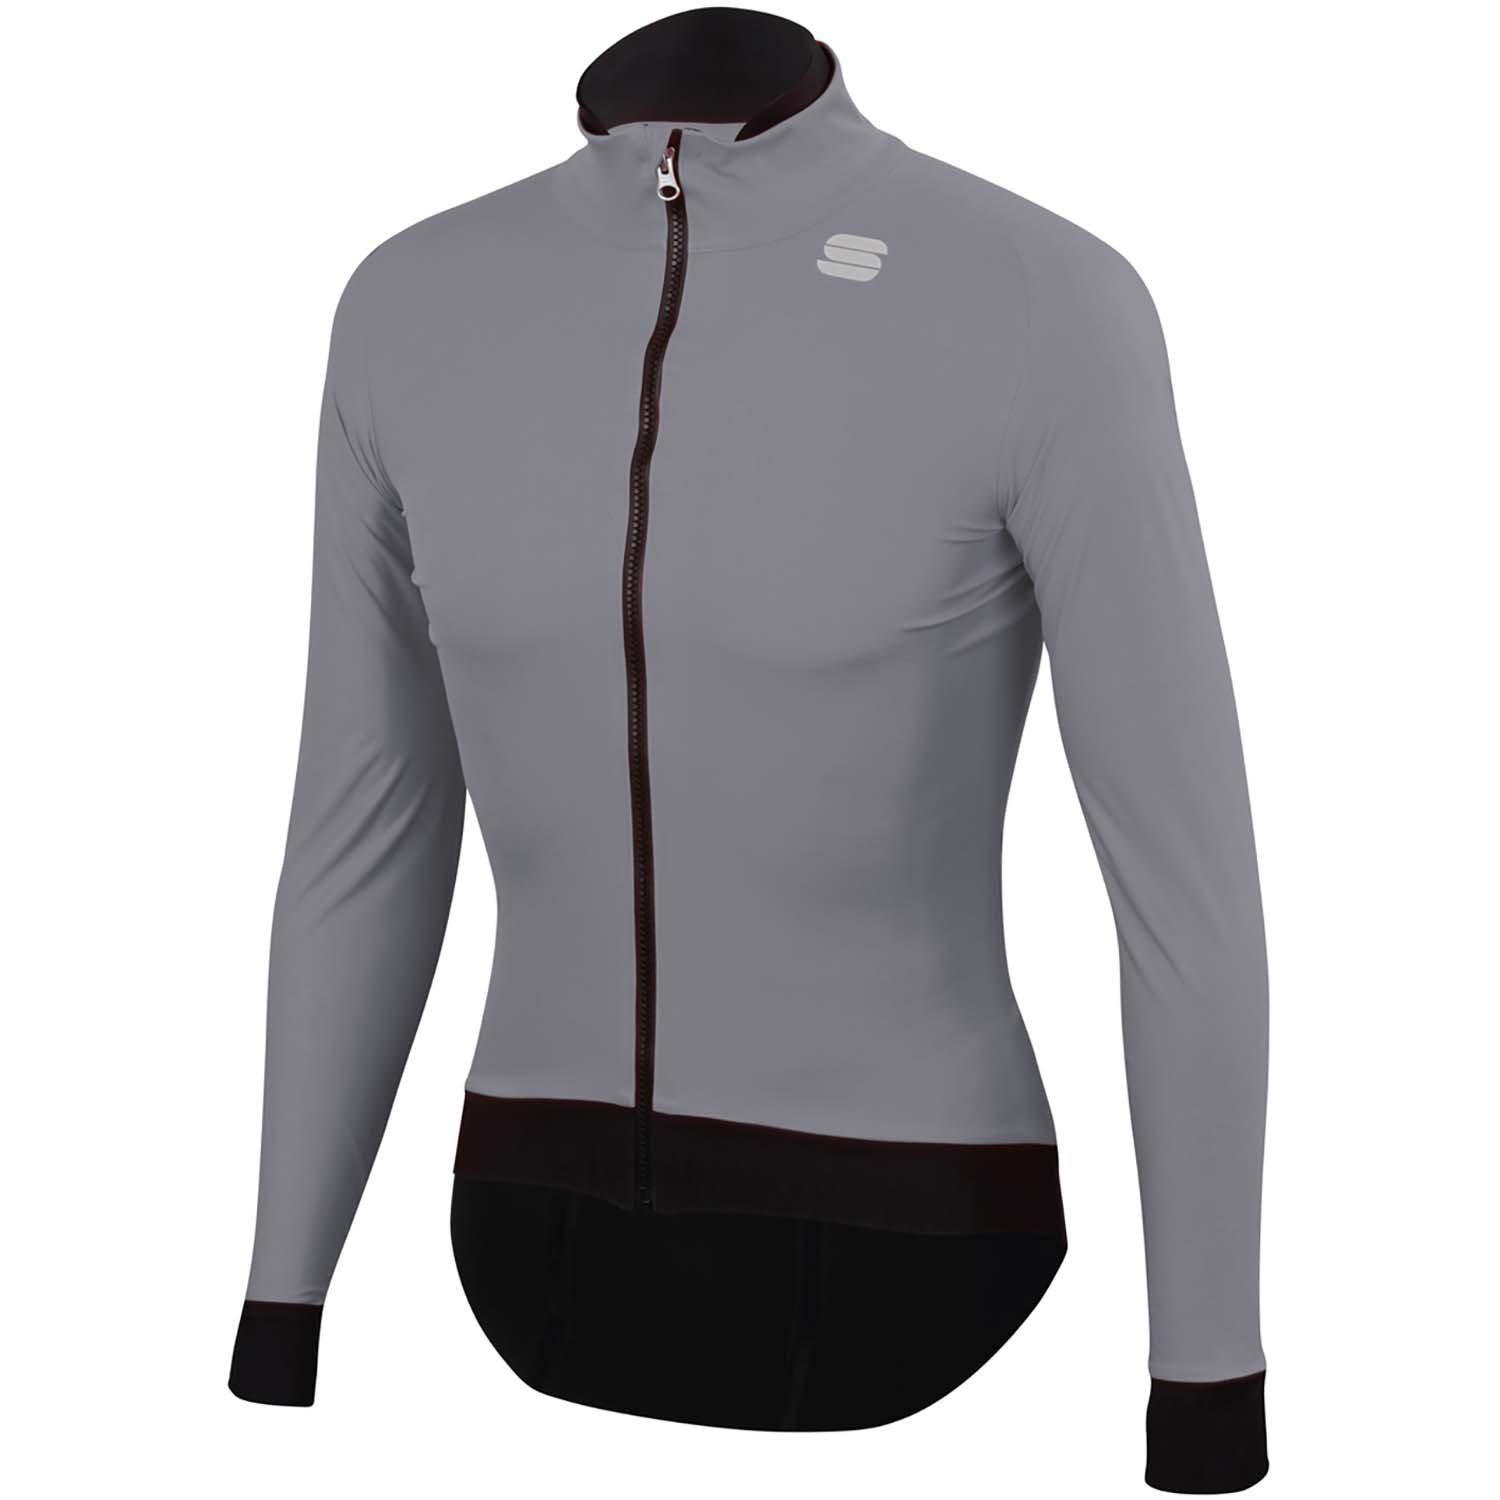 Sportful-Sportful Fiandre Pro Jacket-Cement-S-SF195002502-saddleback-elite-performance-cycling